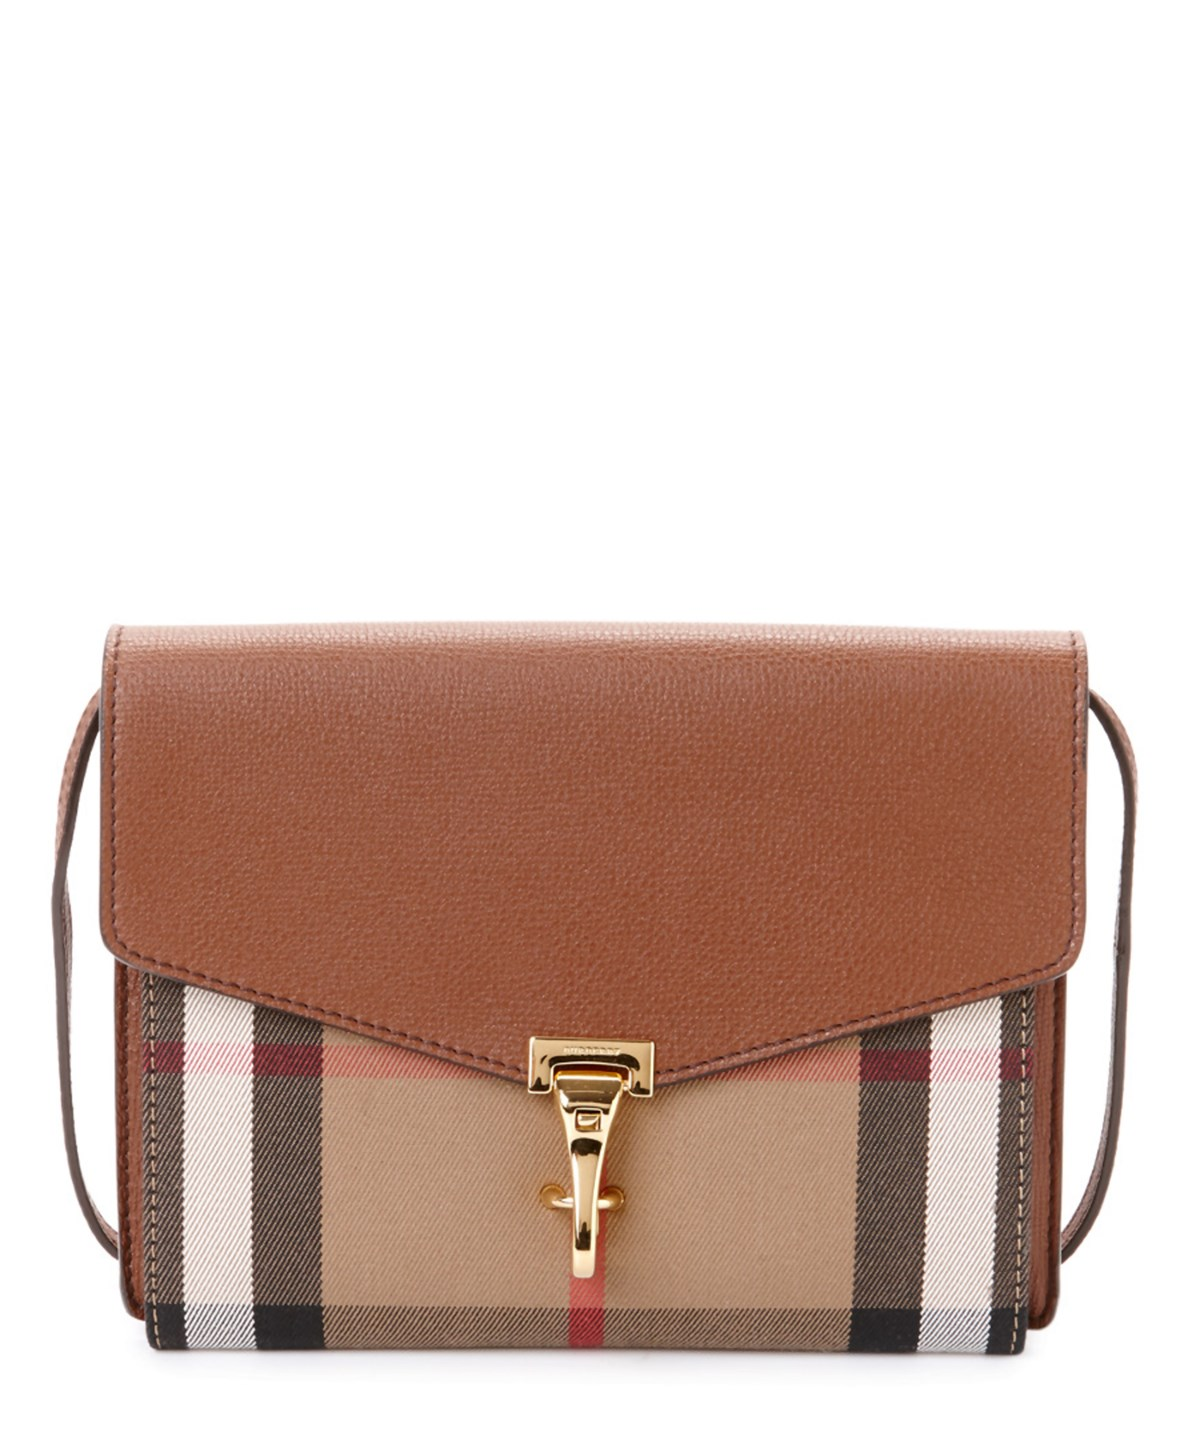 Burberry Macken Small House Check & Leather Crossbody In Brown